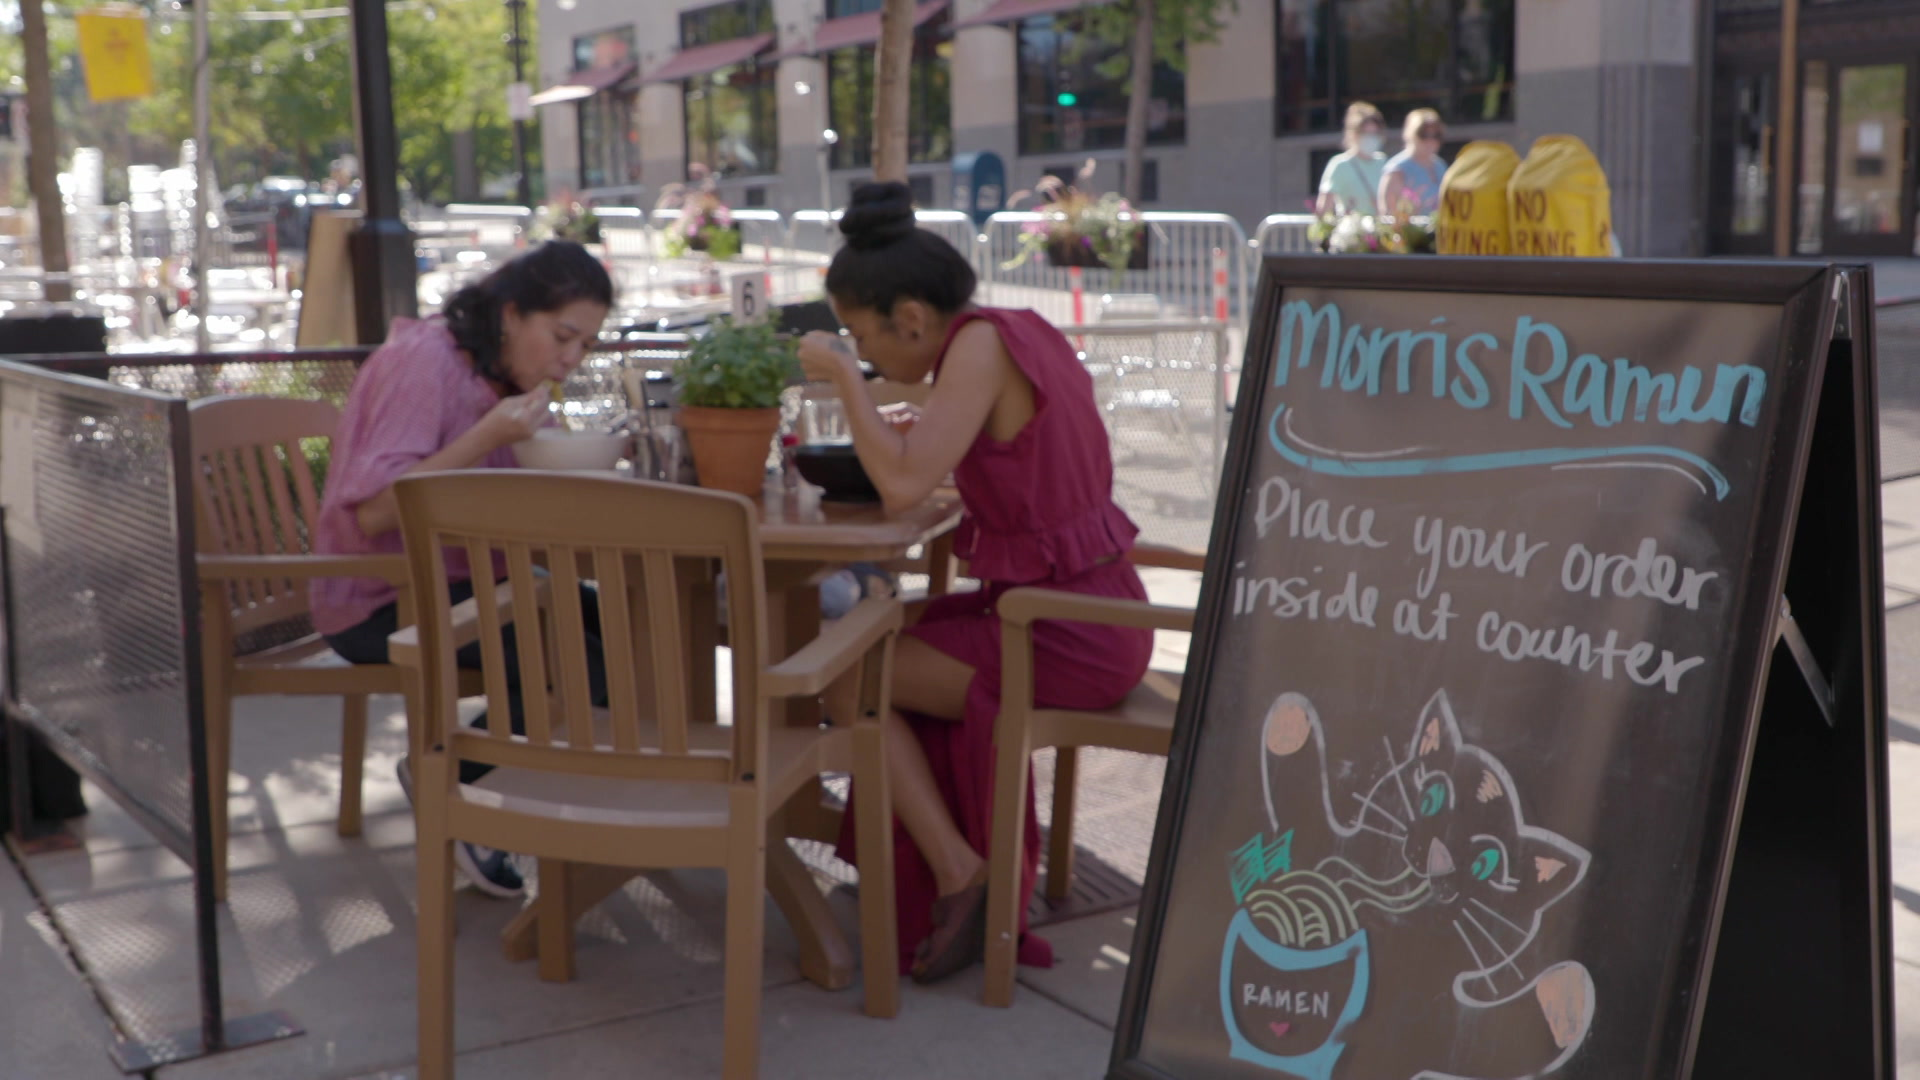 """A sidewalk sign with an illustration of a cat slurping noodles reads """"Morris Ramen: Place your order inside at counter"""" with dinners seated at a sidewalk table in the background."""